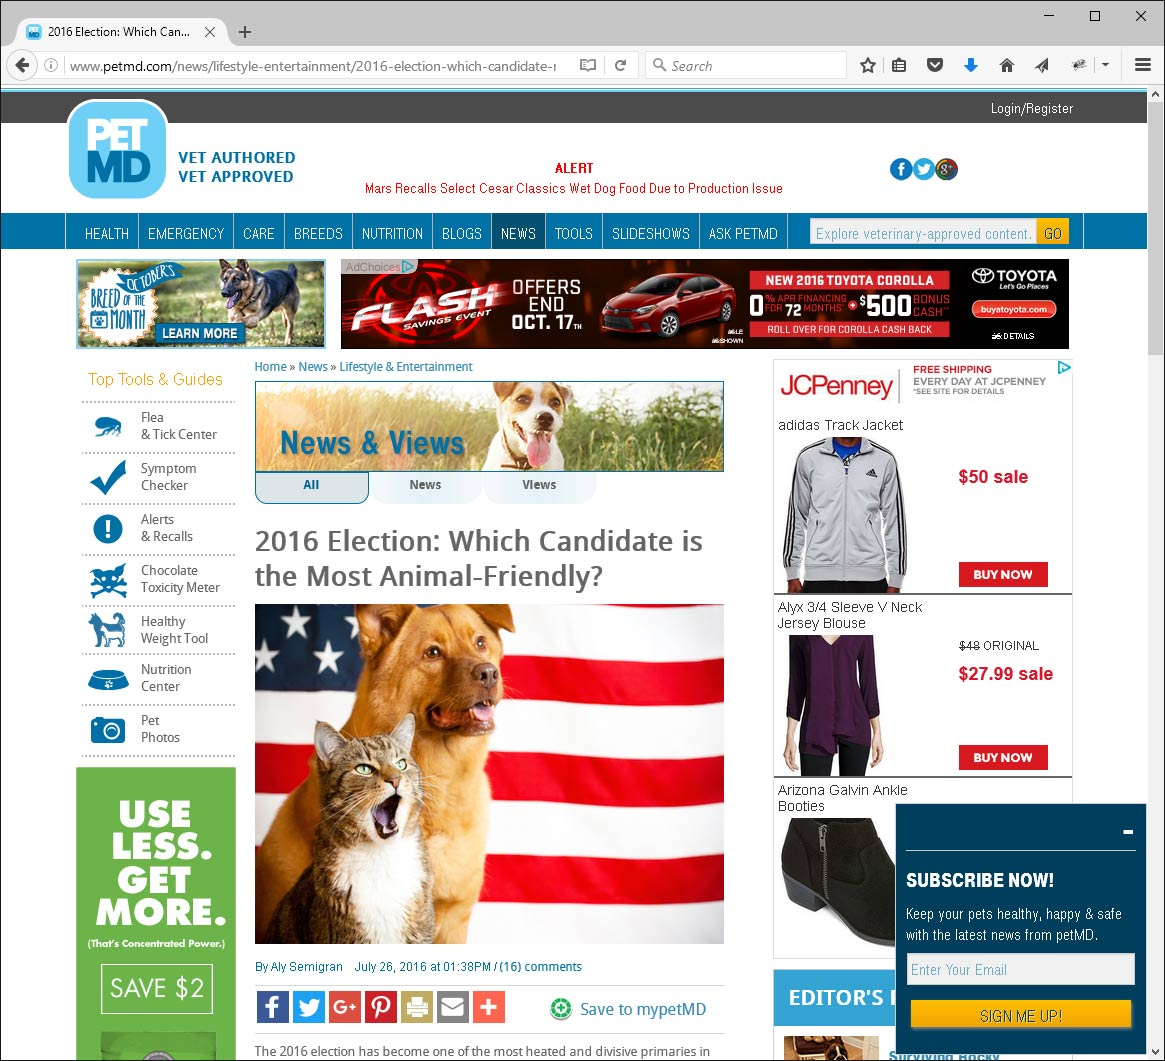 Qtip and Skippy are helping to find the most pet friendly candidate(s) for this election!